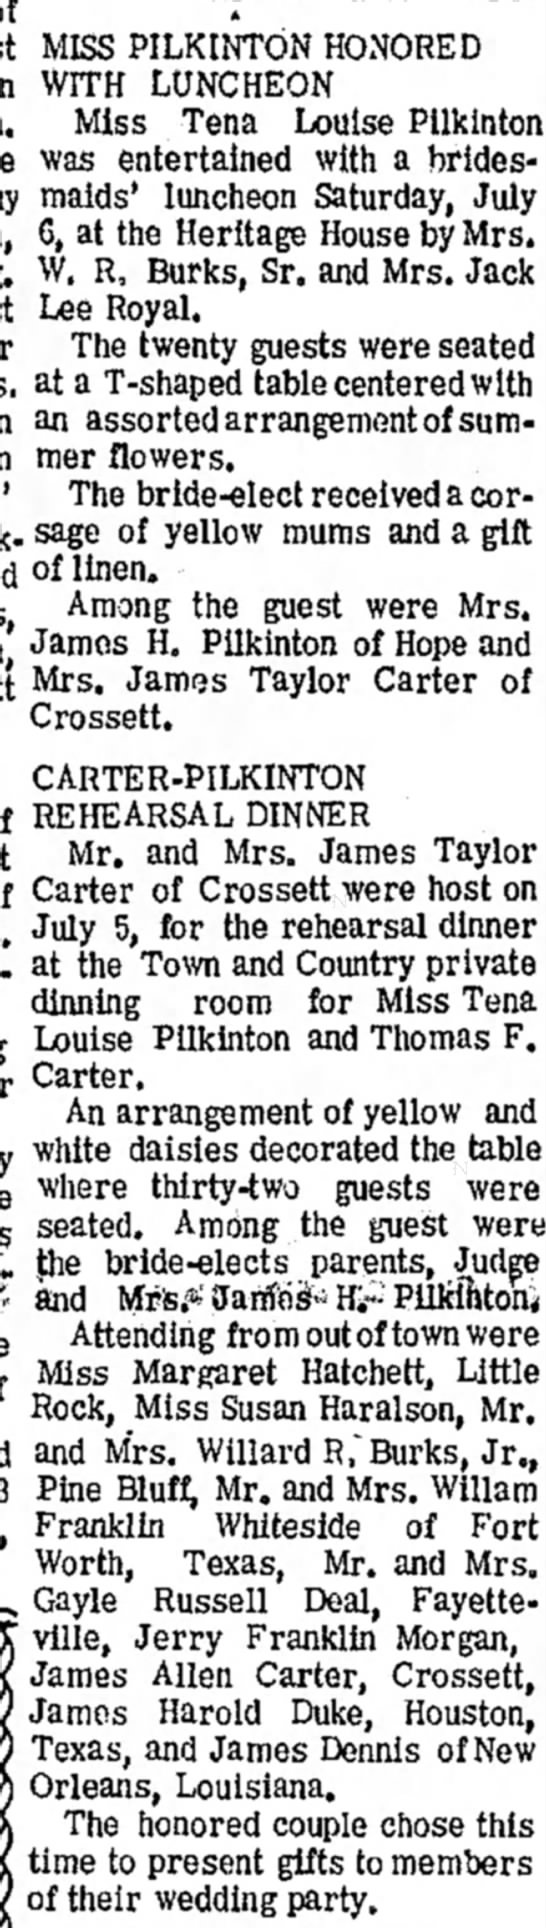 Tina Louise Pilkinton 7/11/68 wedding to Thomas F. Carter - MISS PILKINTON HONORED WITH LUNCHEON Miss Tena...